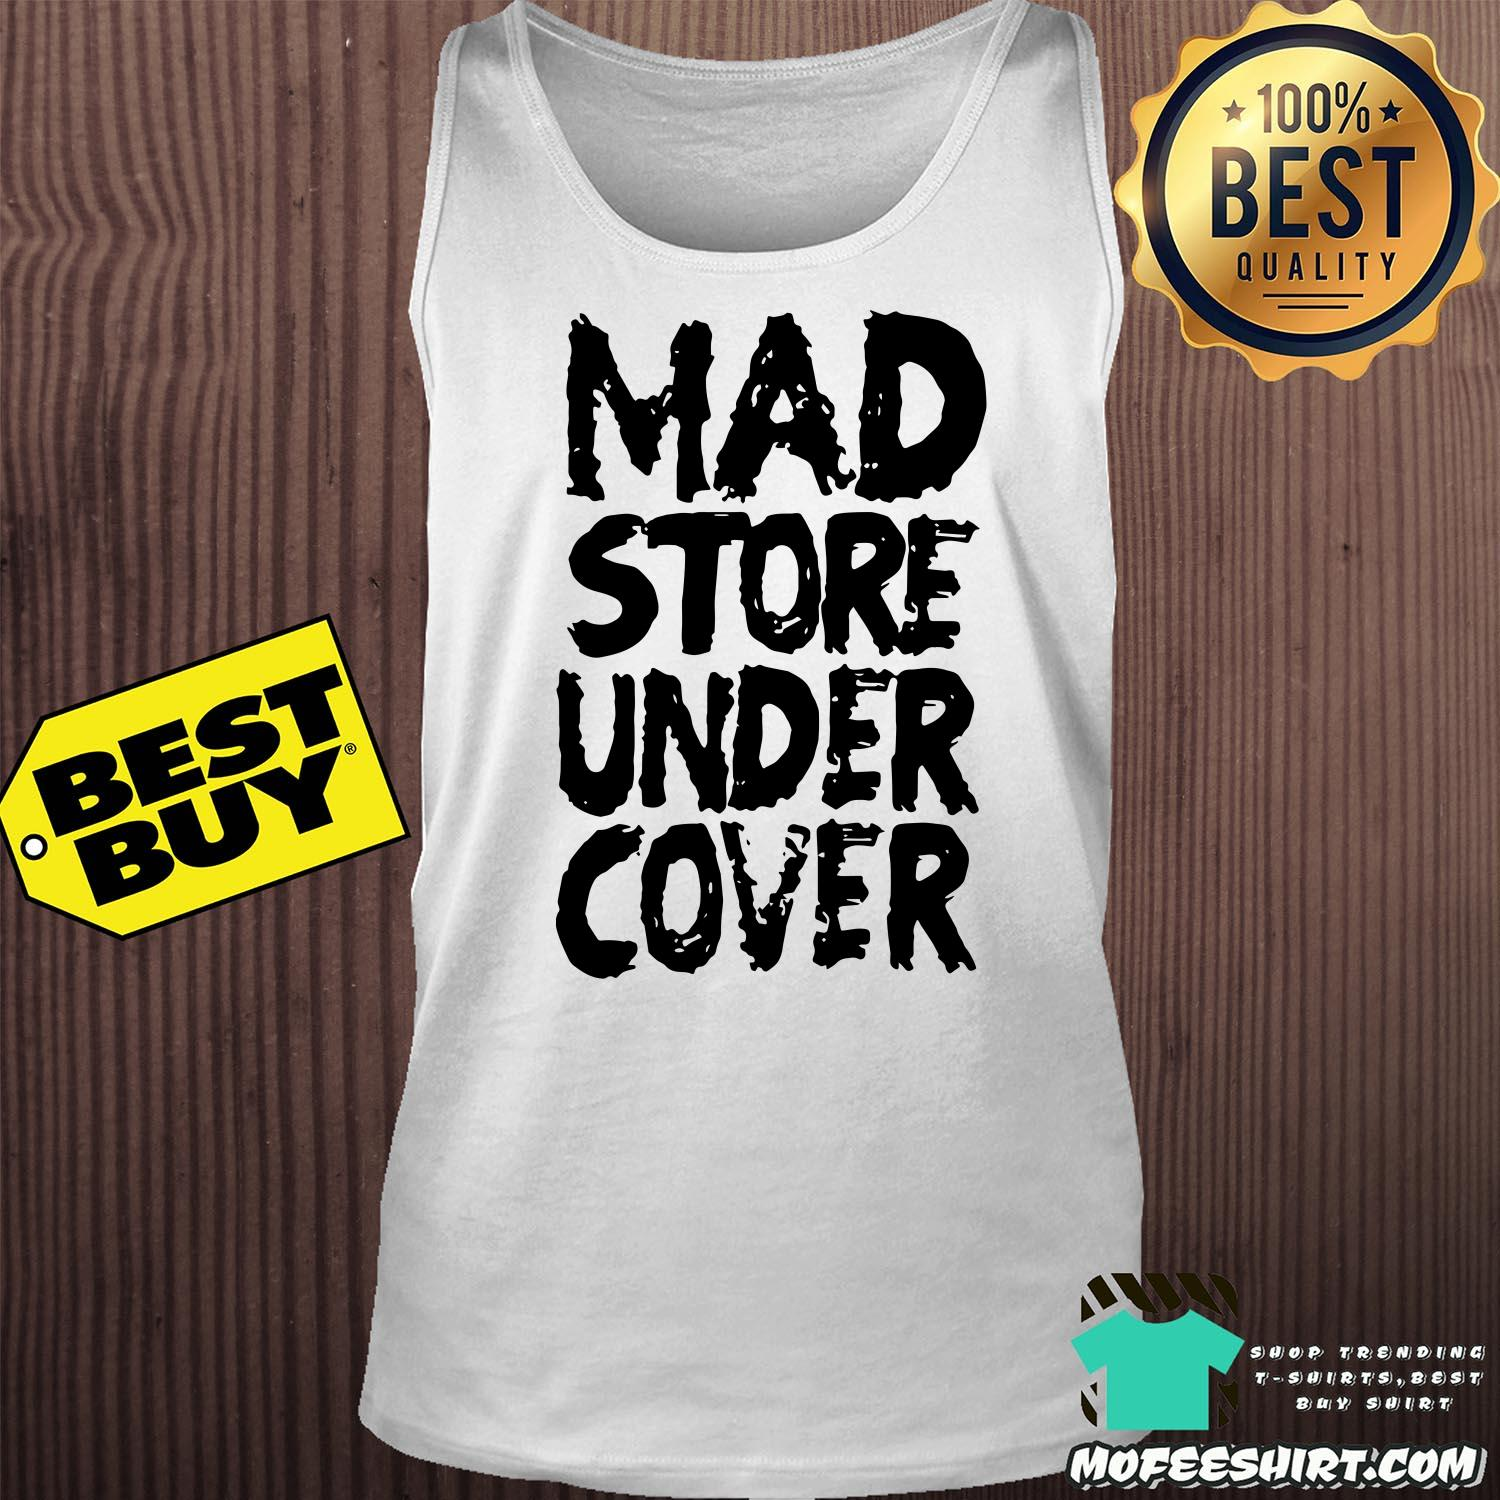 mad store under cover tank top -  Mad Store Under Cover shirt